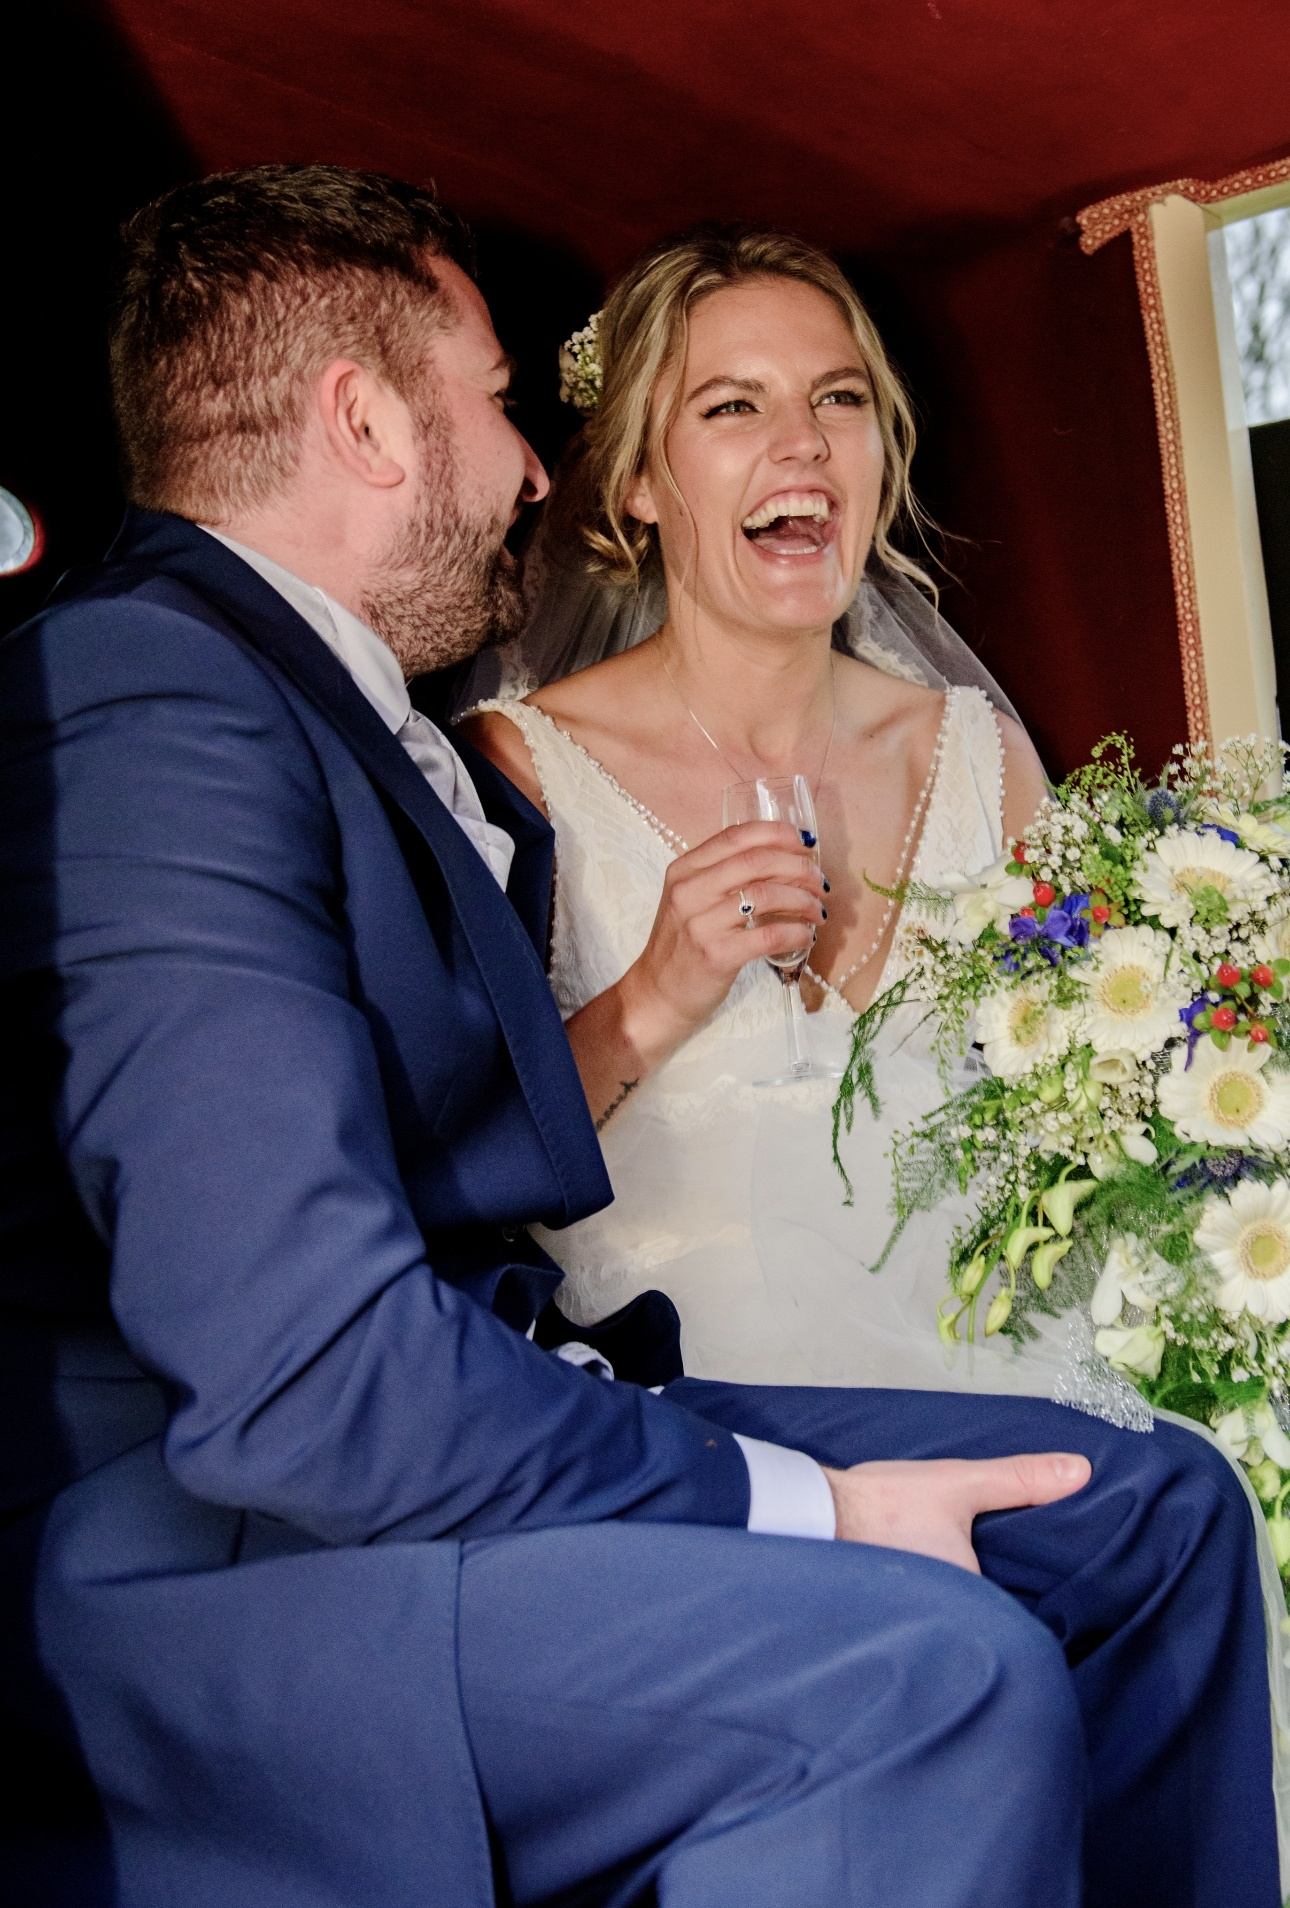 Couple drink champagne in wedding carriage